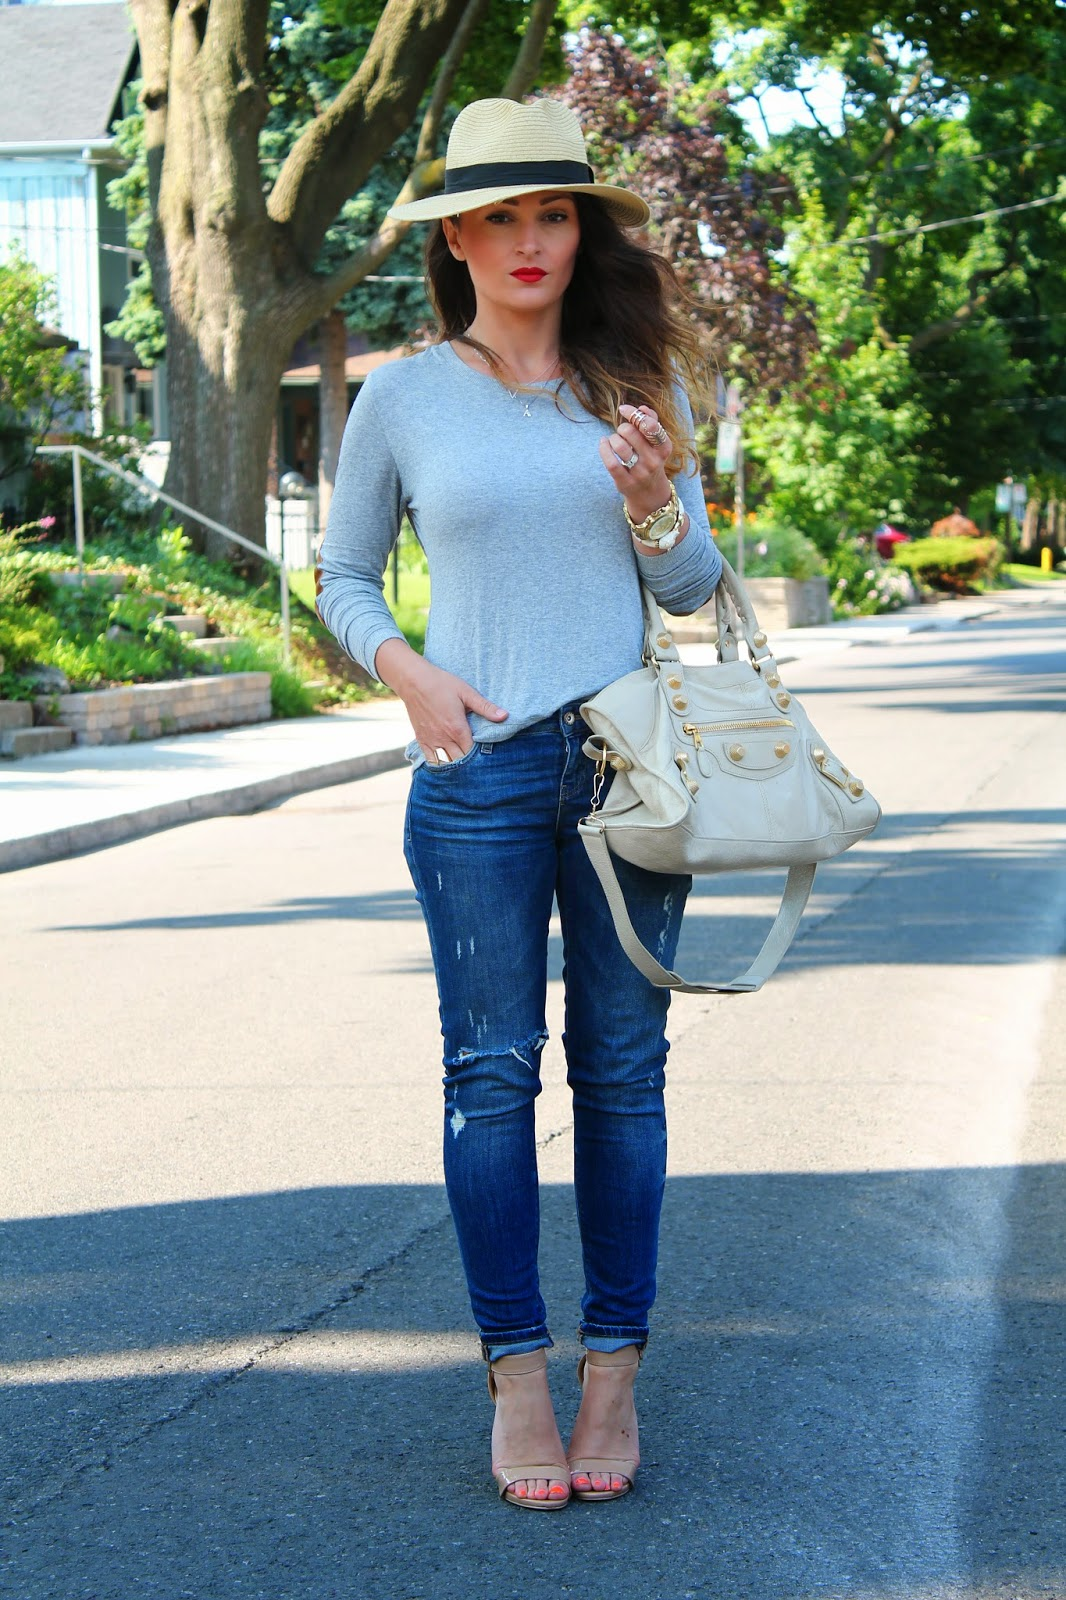 a8a20fc74a3 Casual Chic In Ripped Jeans and Loose Top